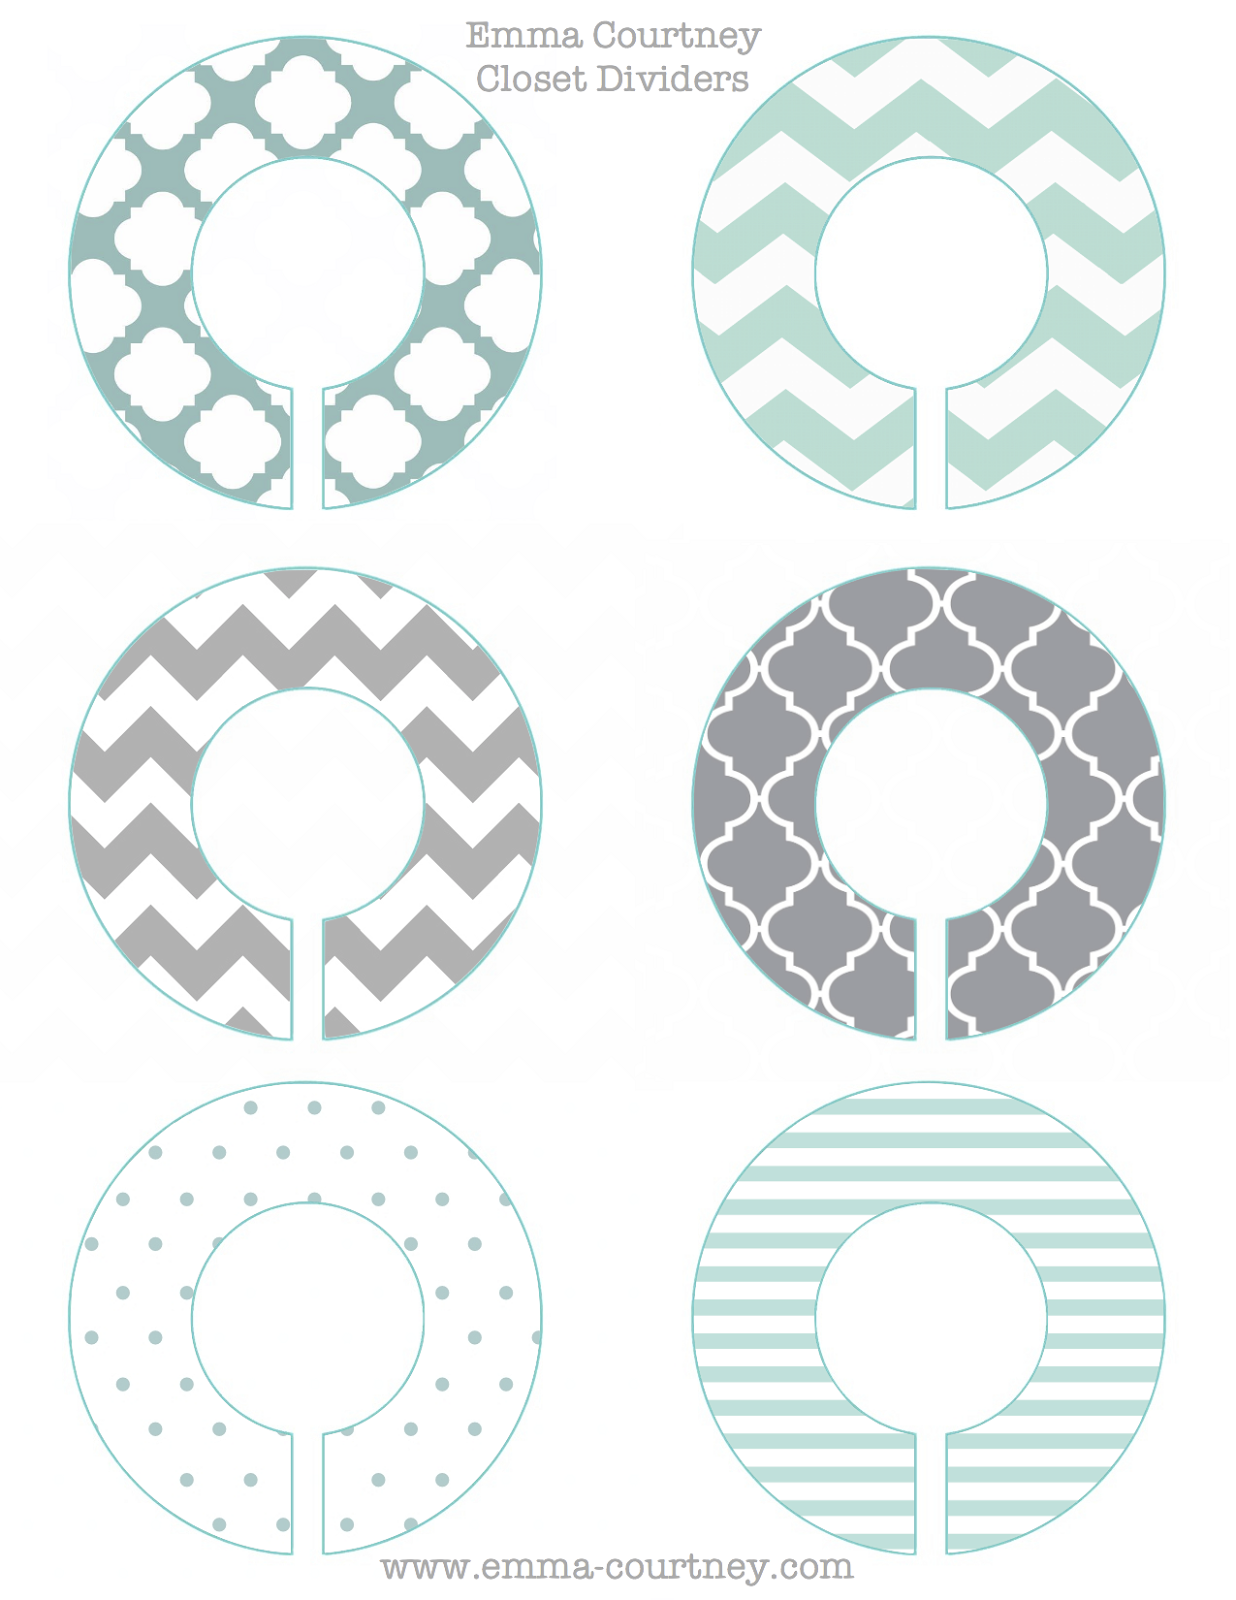 clothes divider template emma courtney closet dividers printable